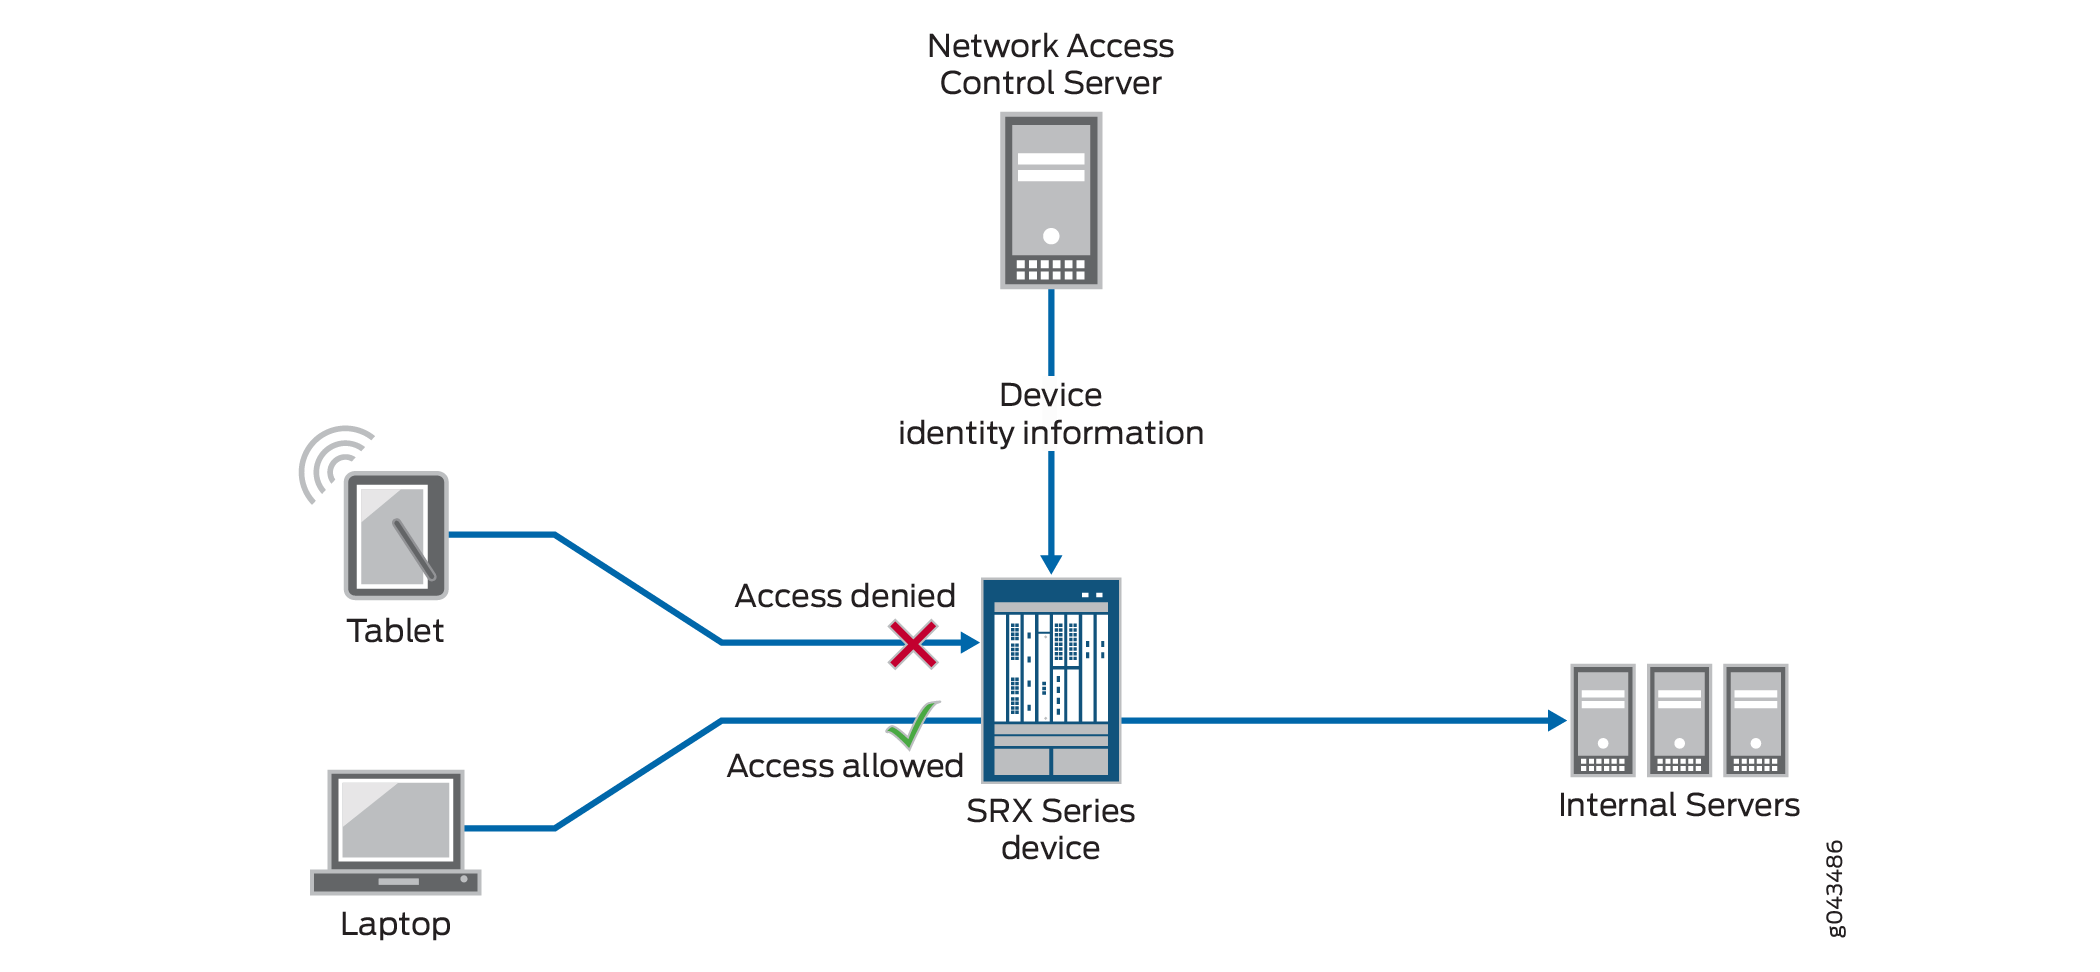 Control Network Access Using Device Identity Authentication